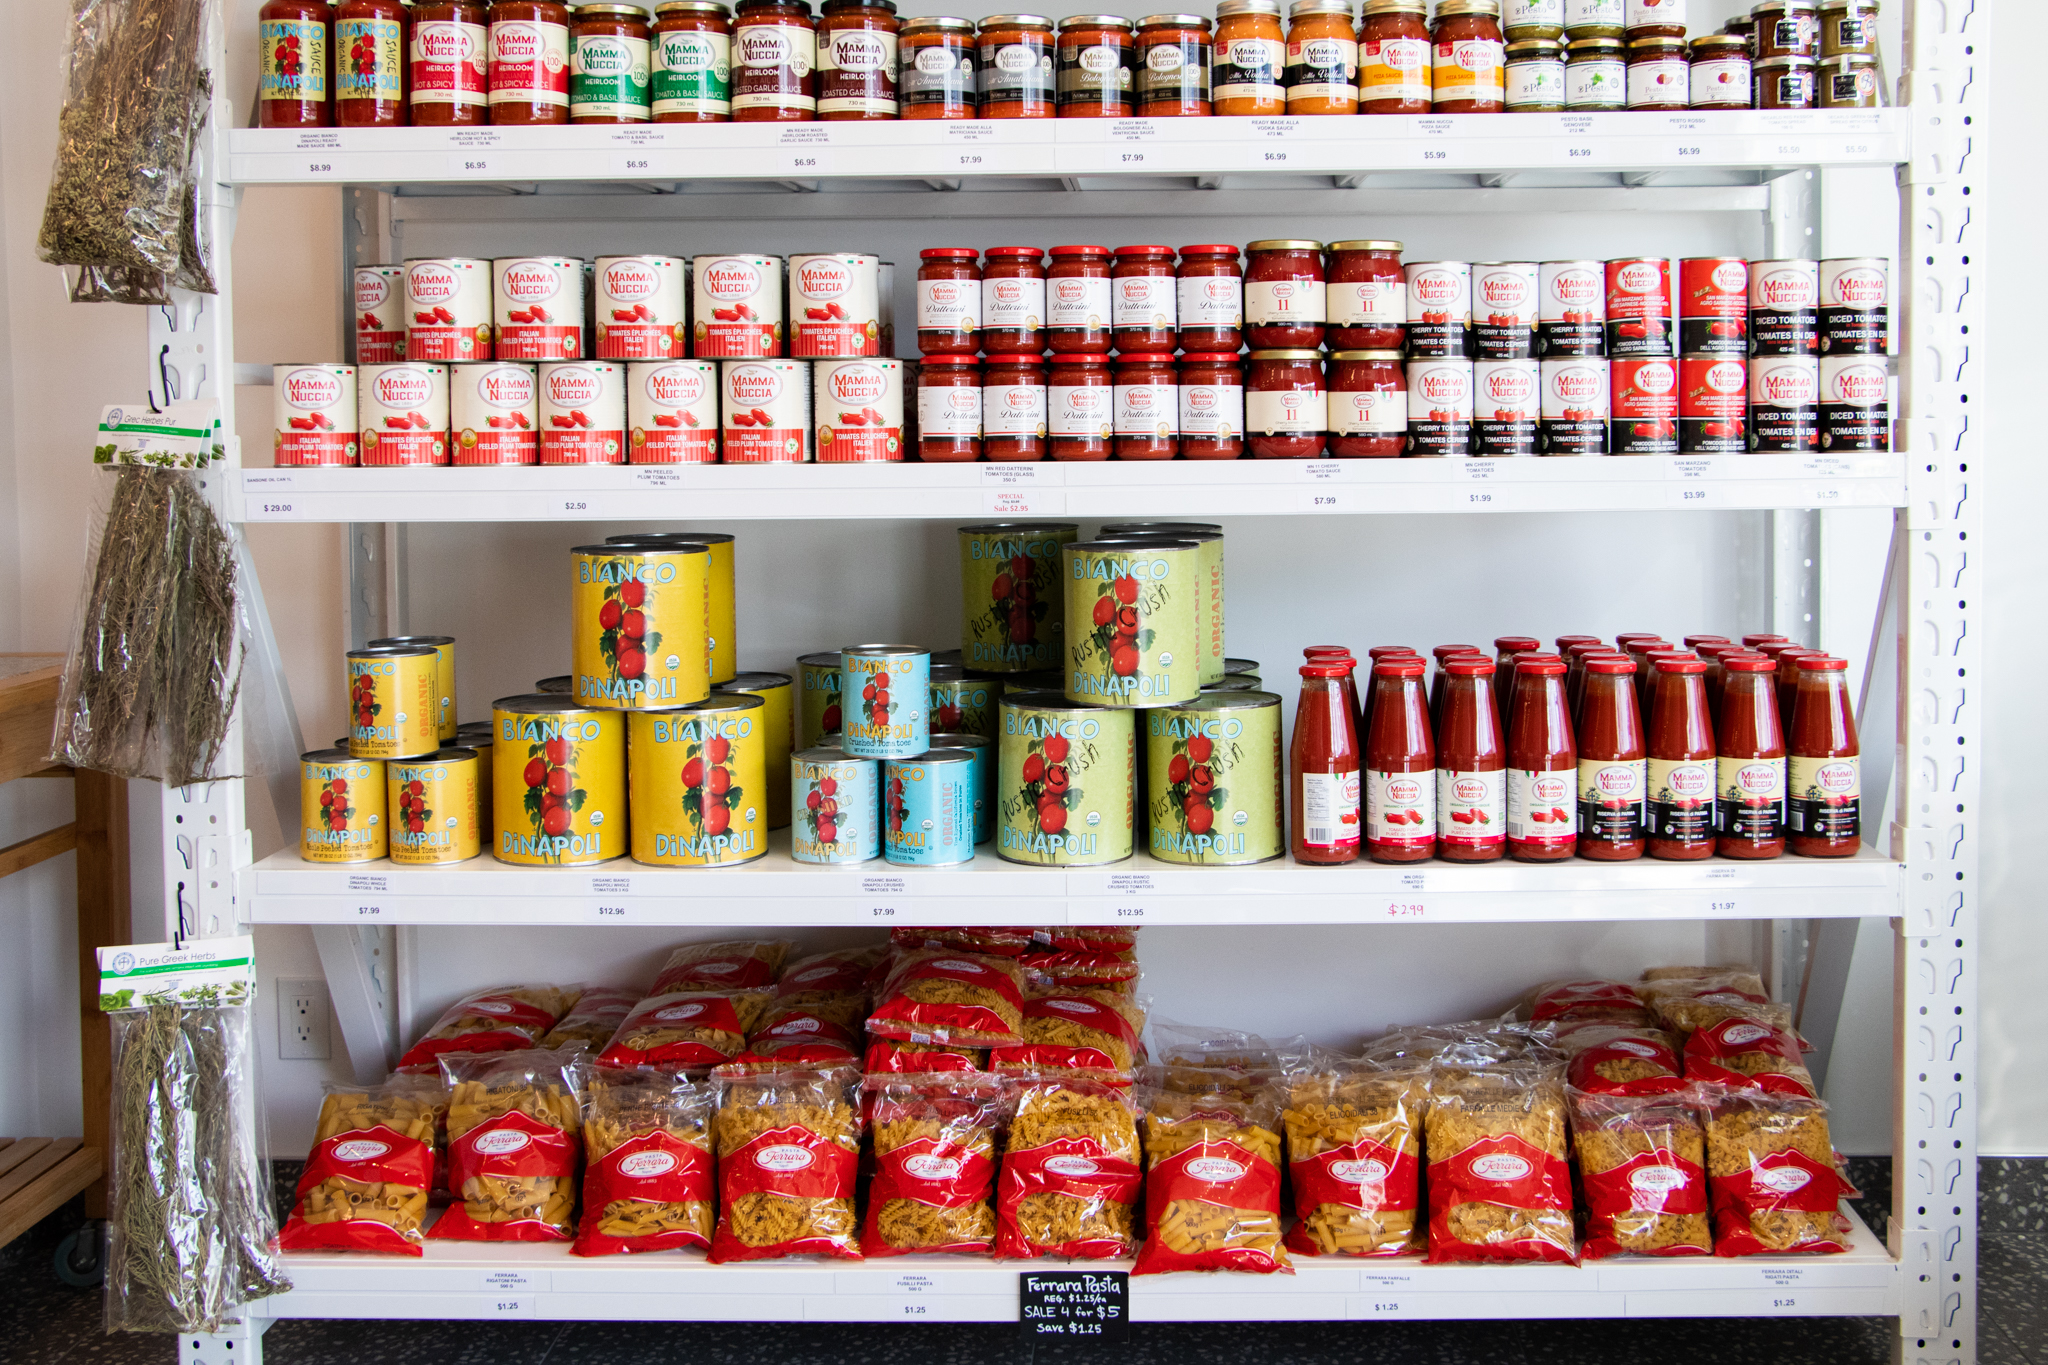 Tomato sauce and pasta on shelves in La Spesa Food Market. Image by: @paothebao